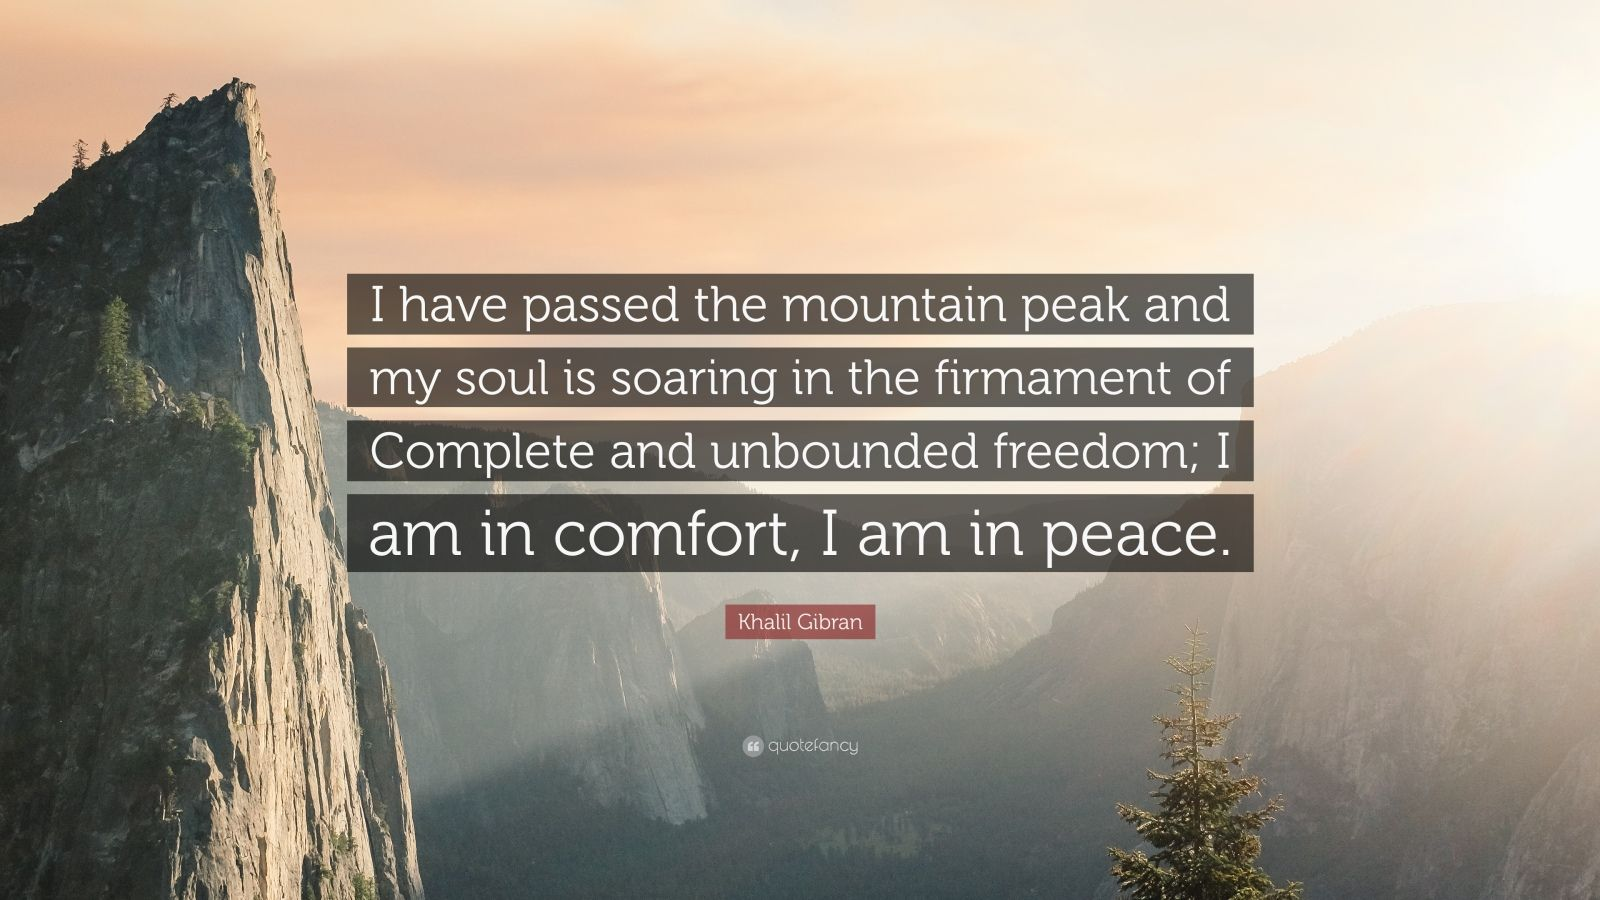 """Khalil Gibran Quote: """"I have passed the mountain peak and my soul is soaring in the firmament of Complete and unbounded freedom; I am in comfort, I am in peace."""""""